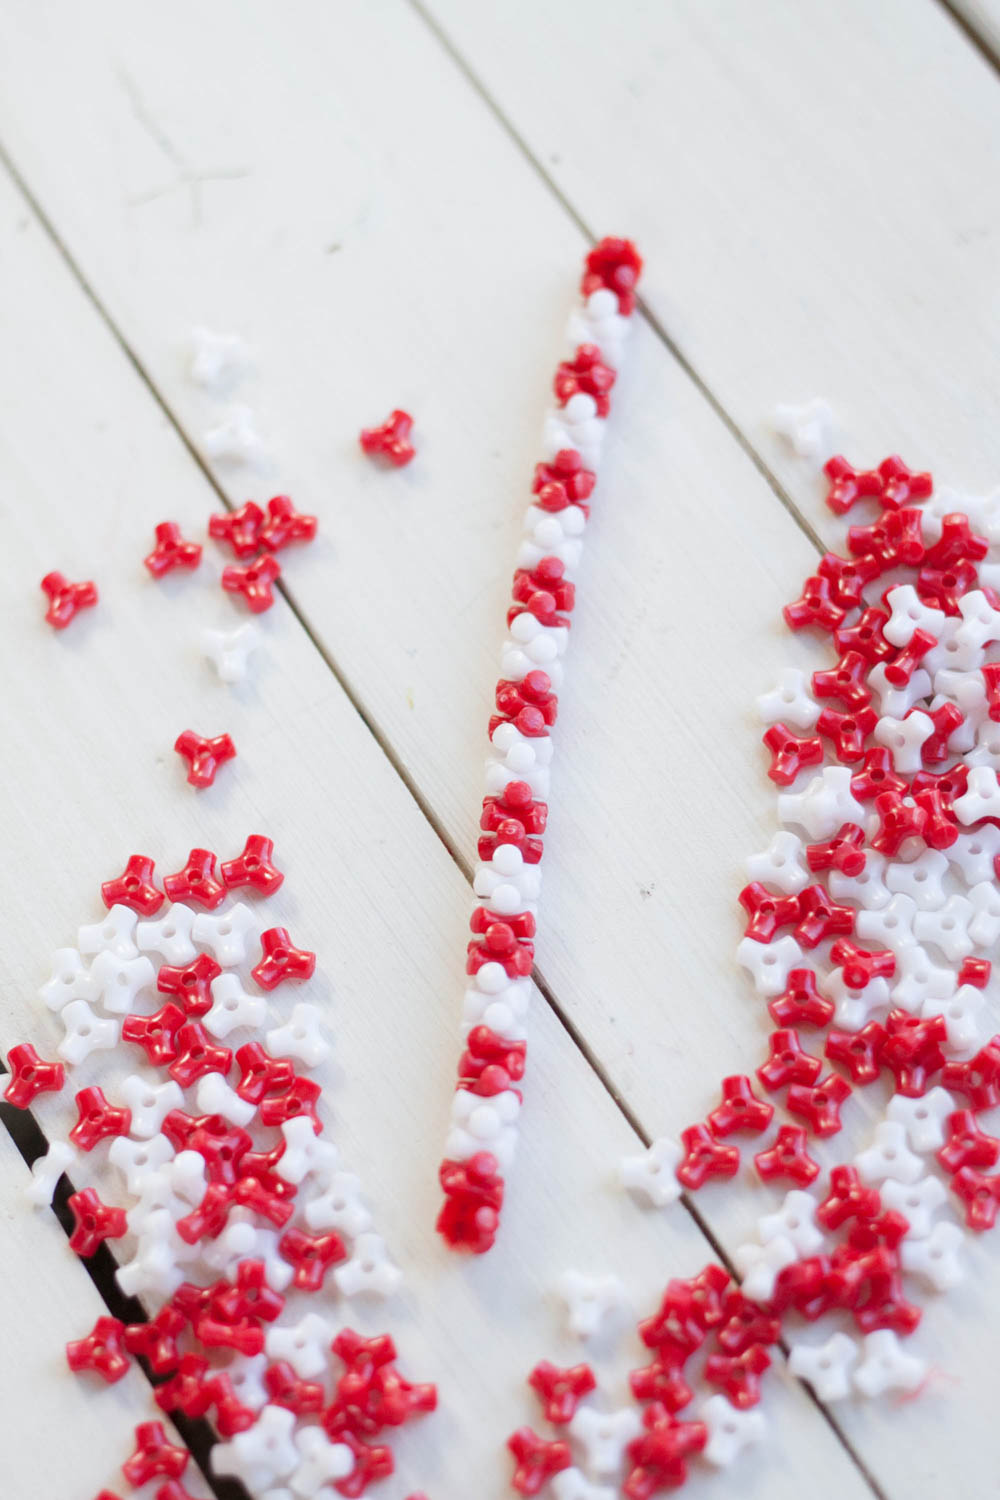 Candy cane pipe cleaners